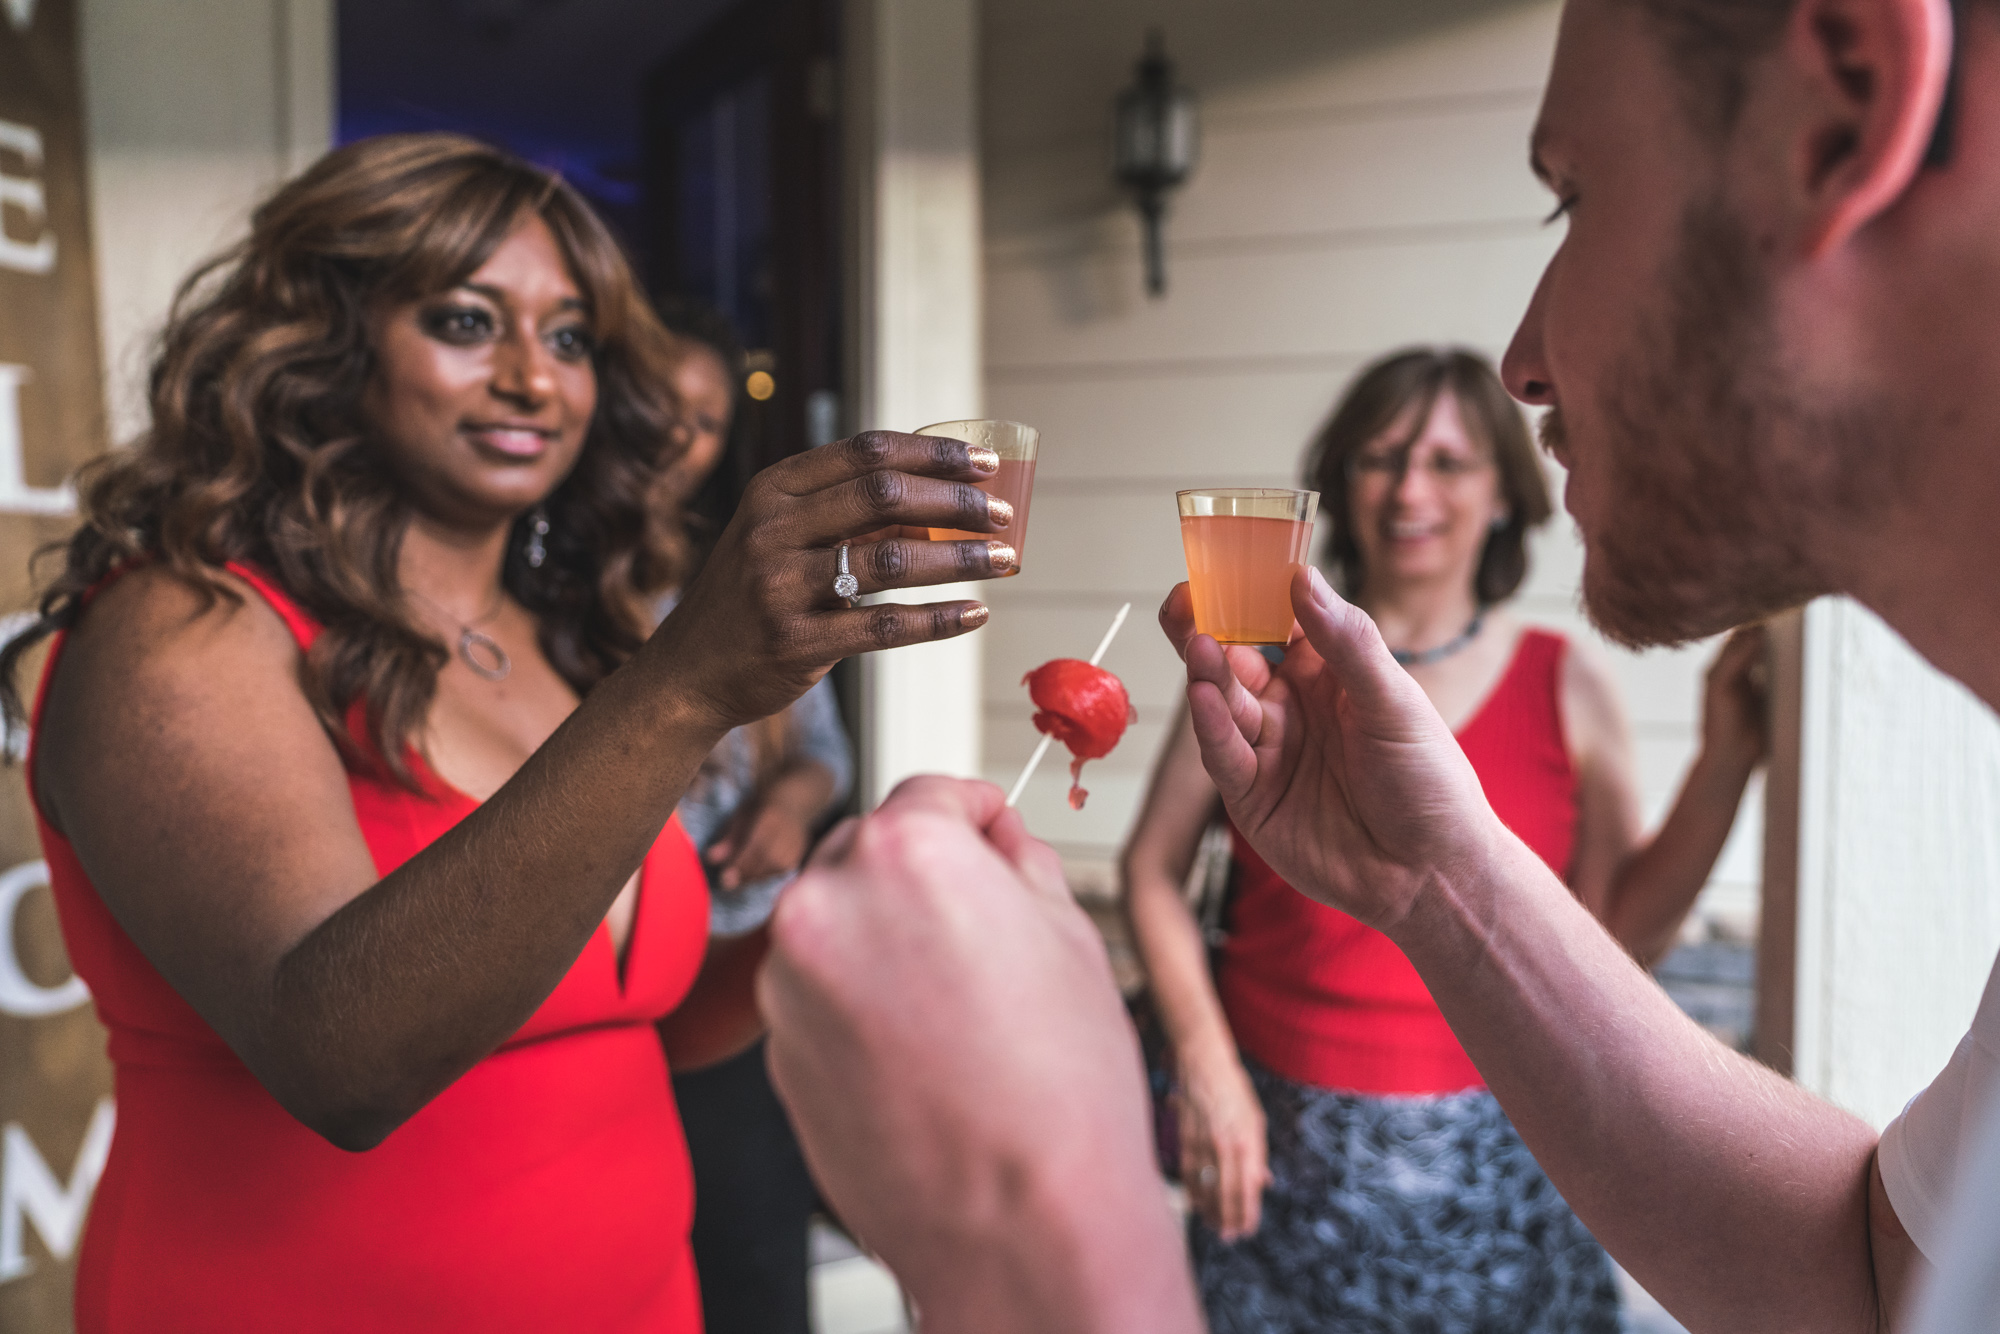 Woman in a bright red dress holds up a shot to cheers with her boyfriend